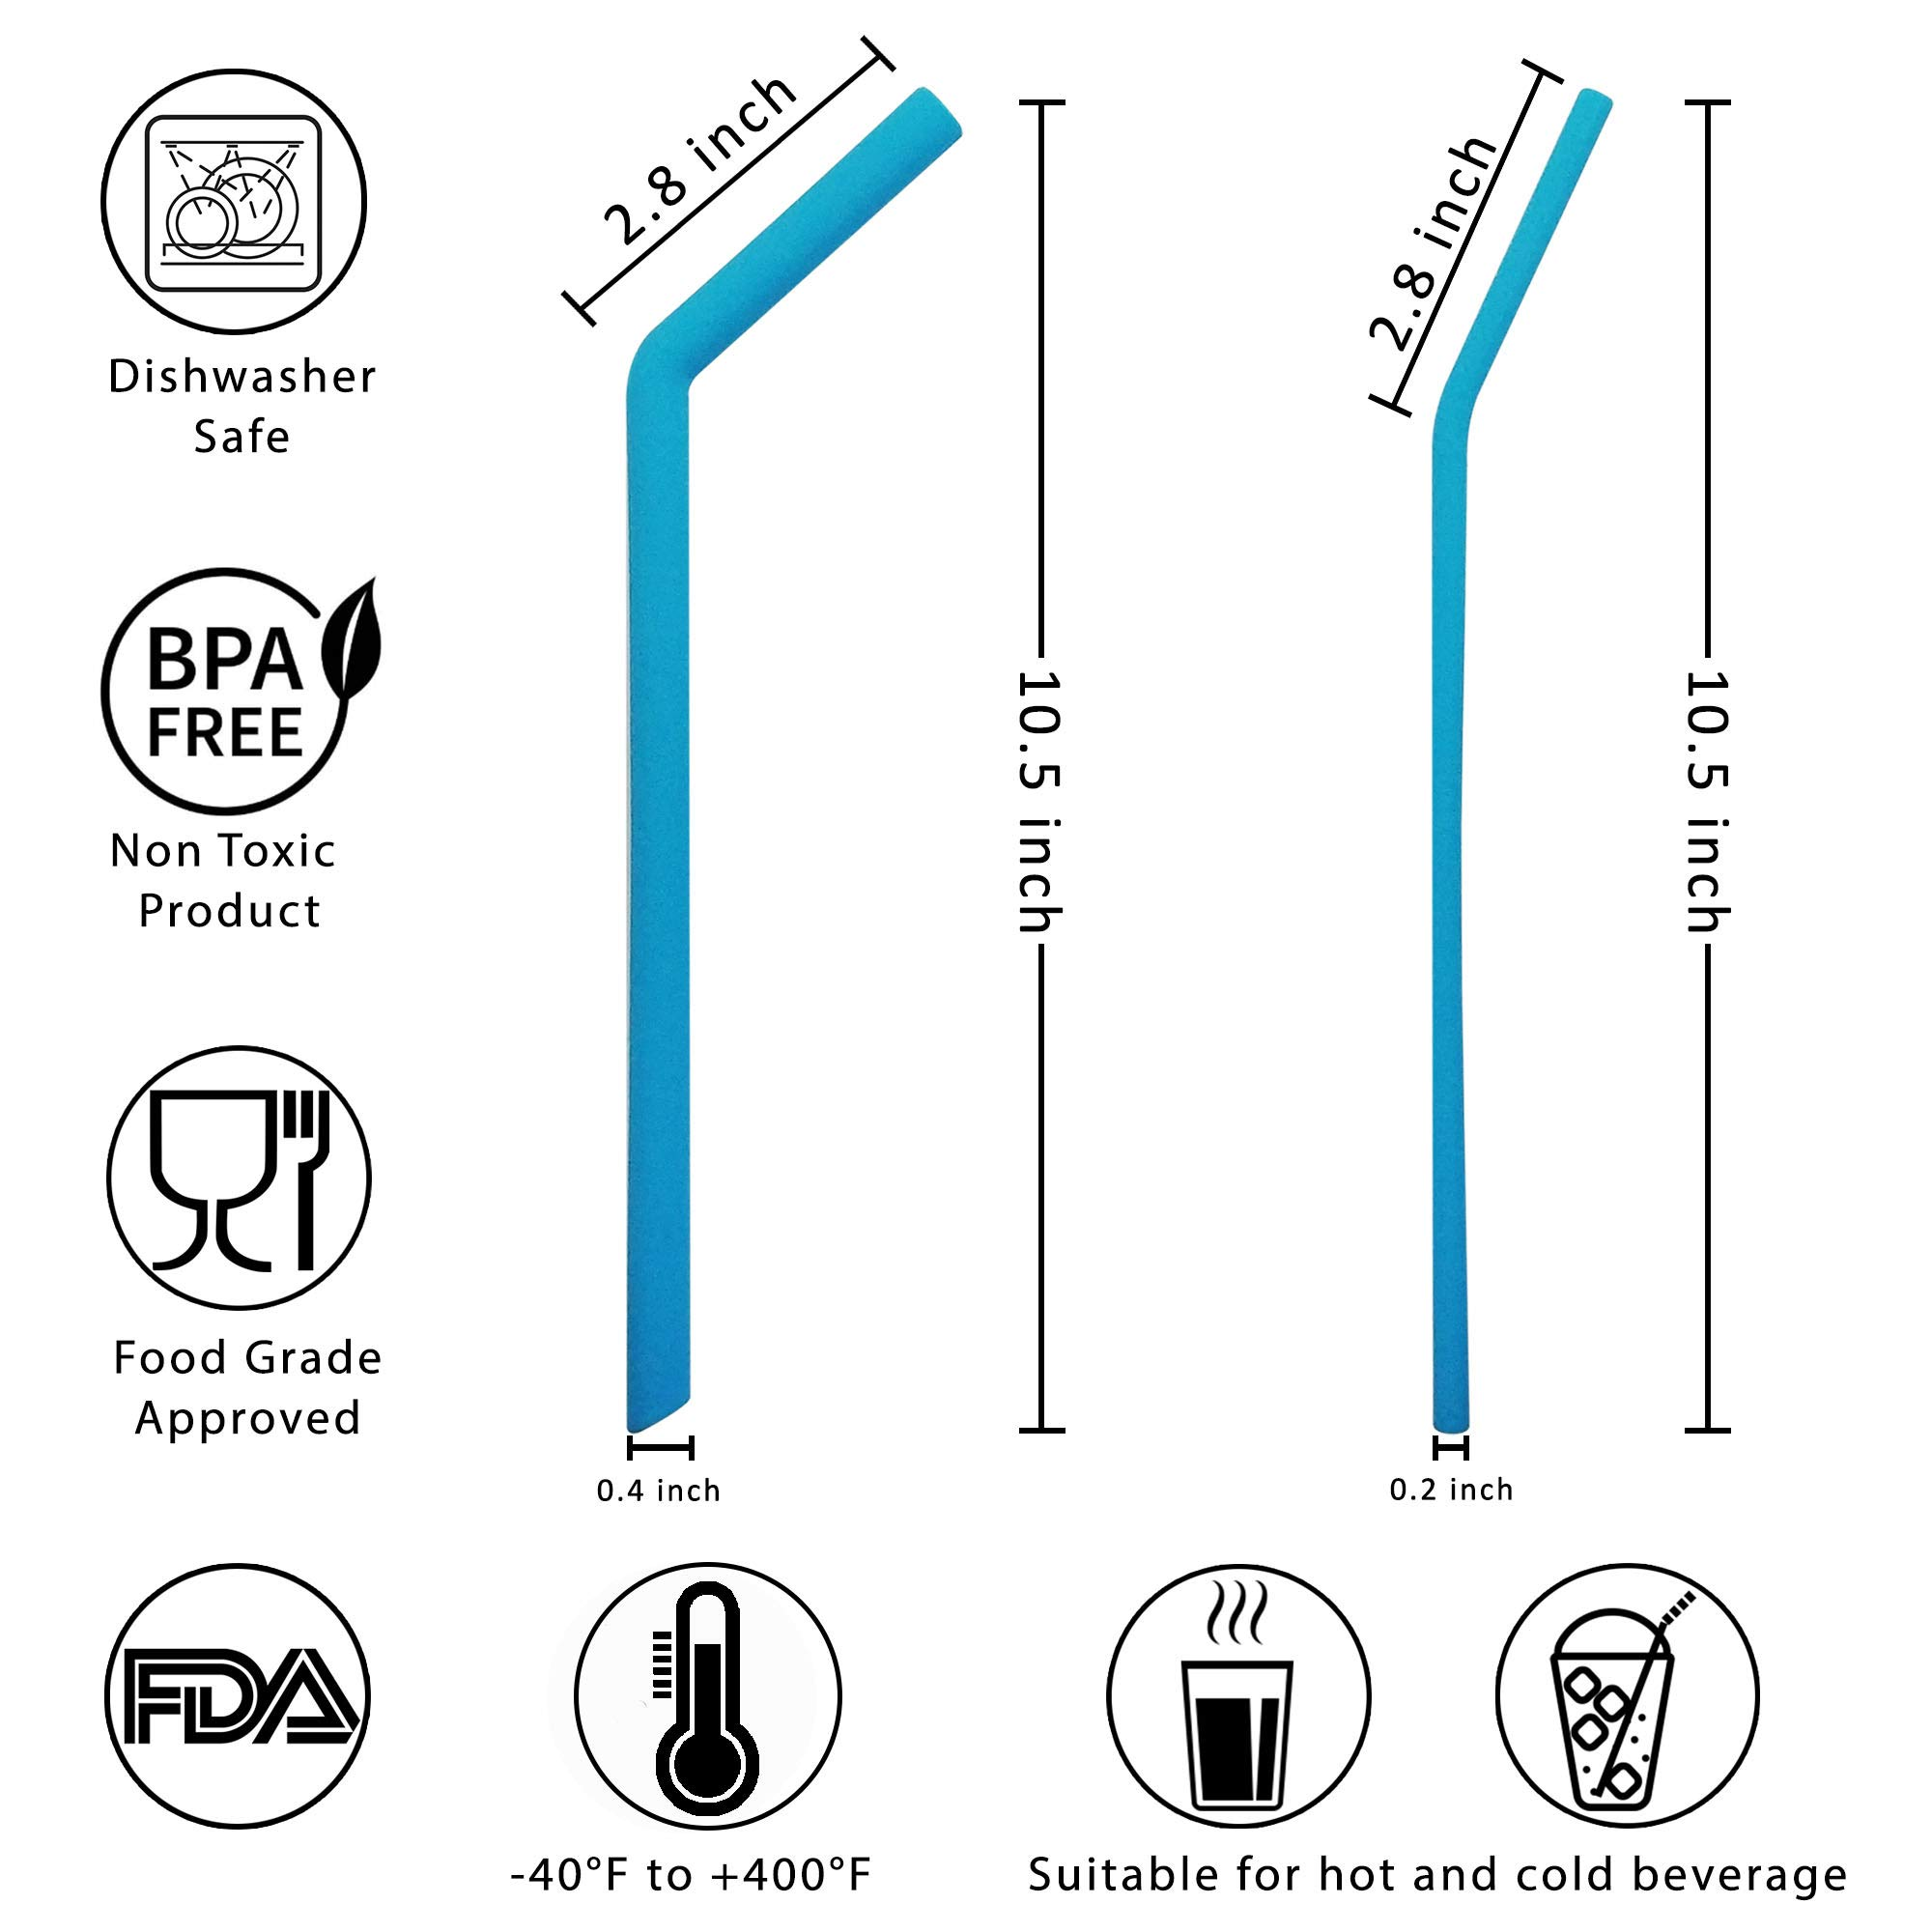 Evalasting Reusable Silicone Straws for Hot or Cold Beverages- FDA Approved Food Grade Silicone, BPA Free - Contains: 4 Thin + 4 Large Long Straw Fits 30 oz Tumbler + Cleaning Brush + Travel Pouch by Evalasting (Image #3)